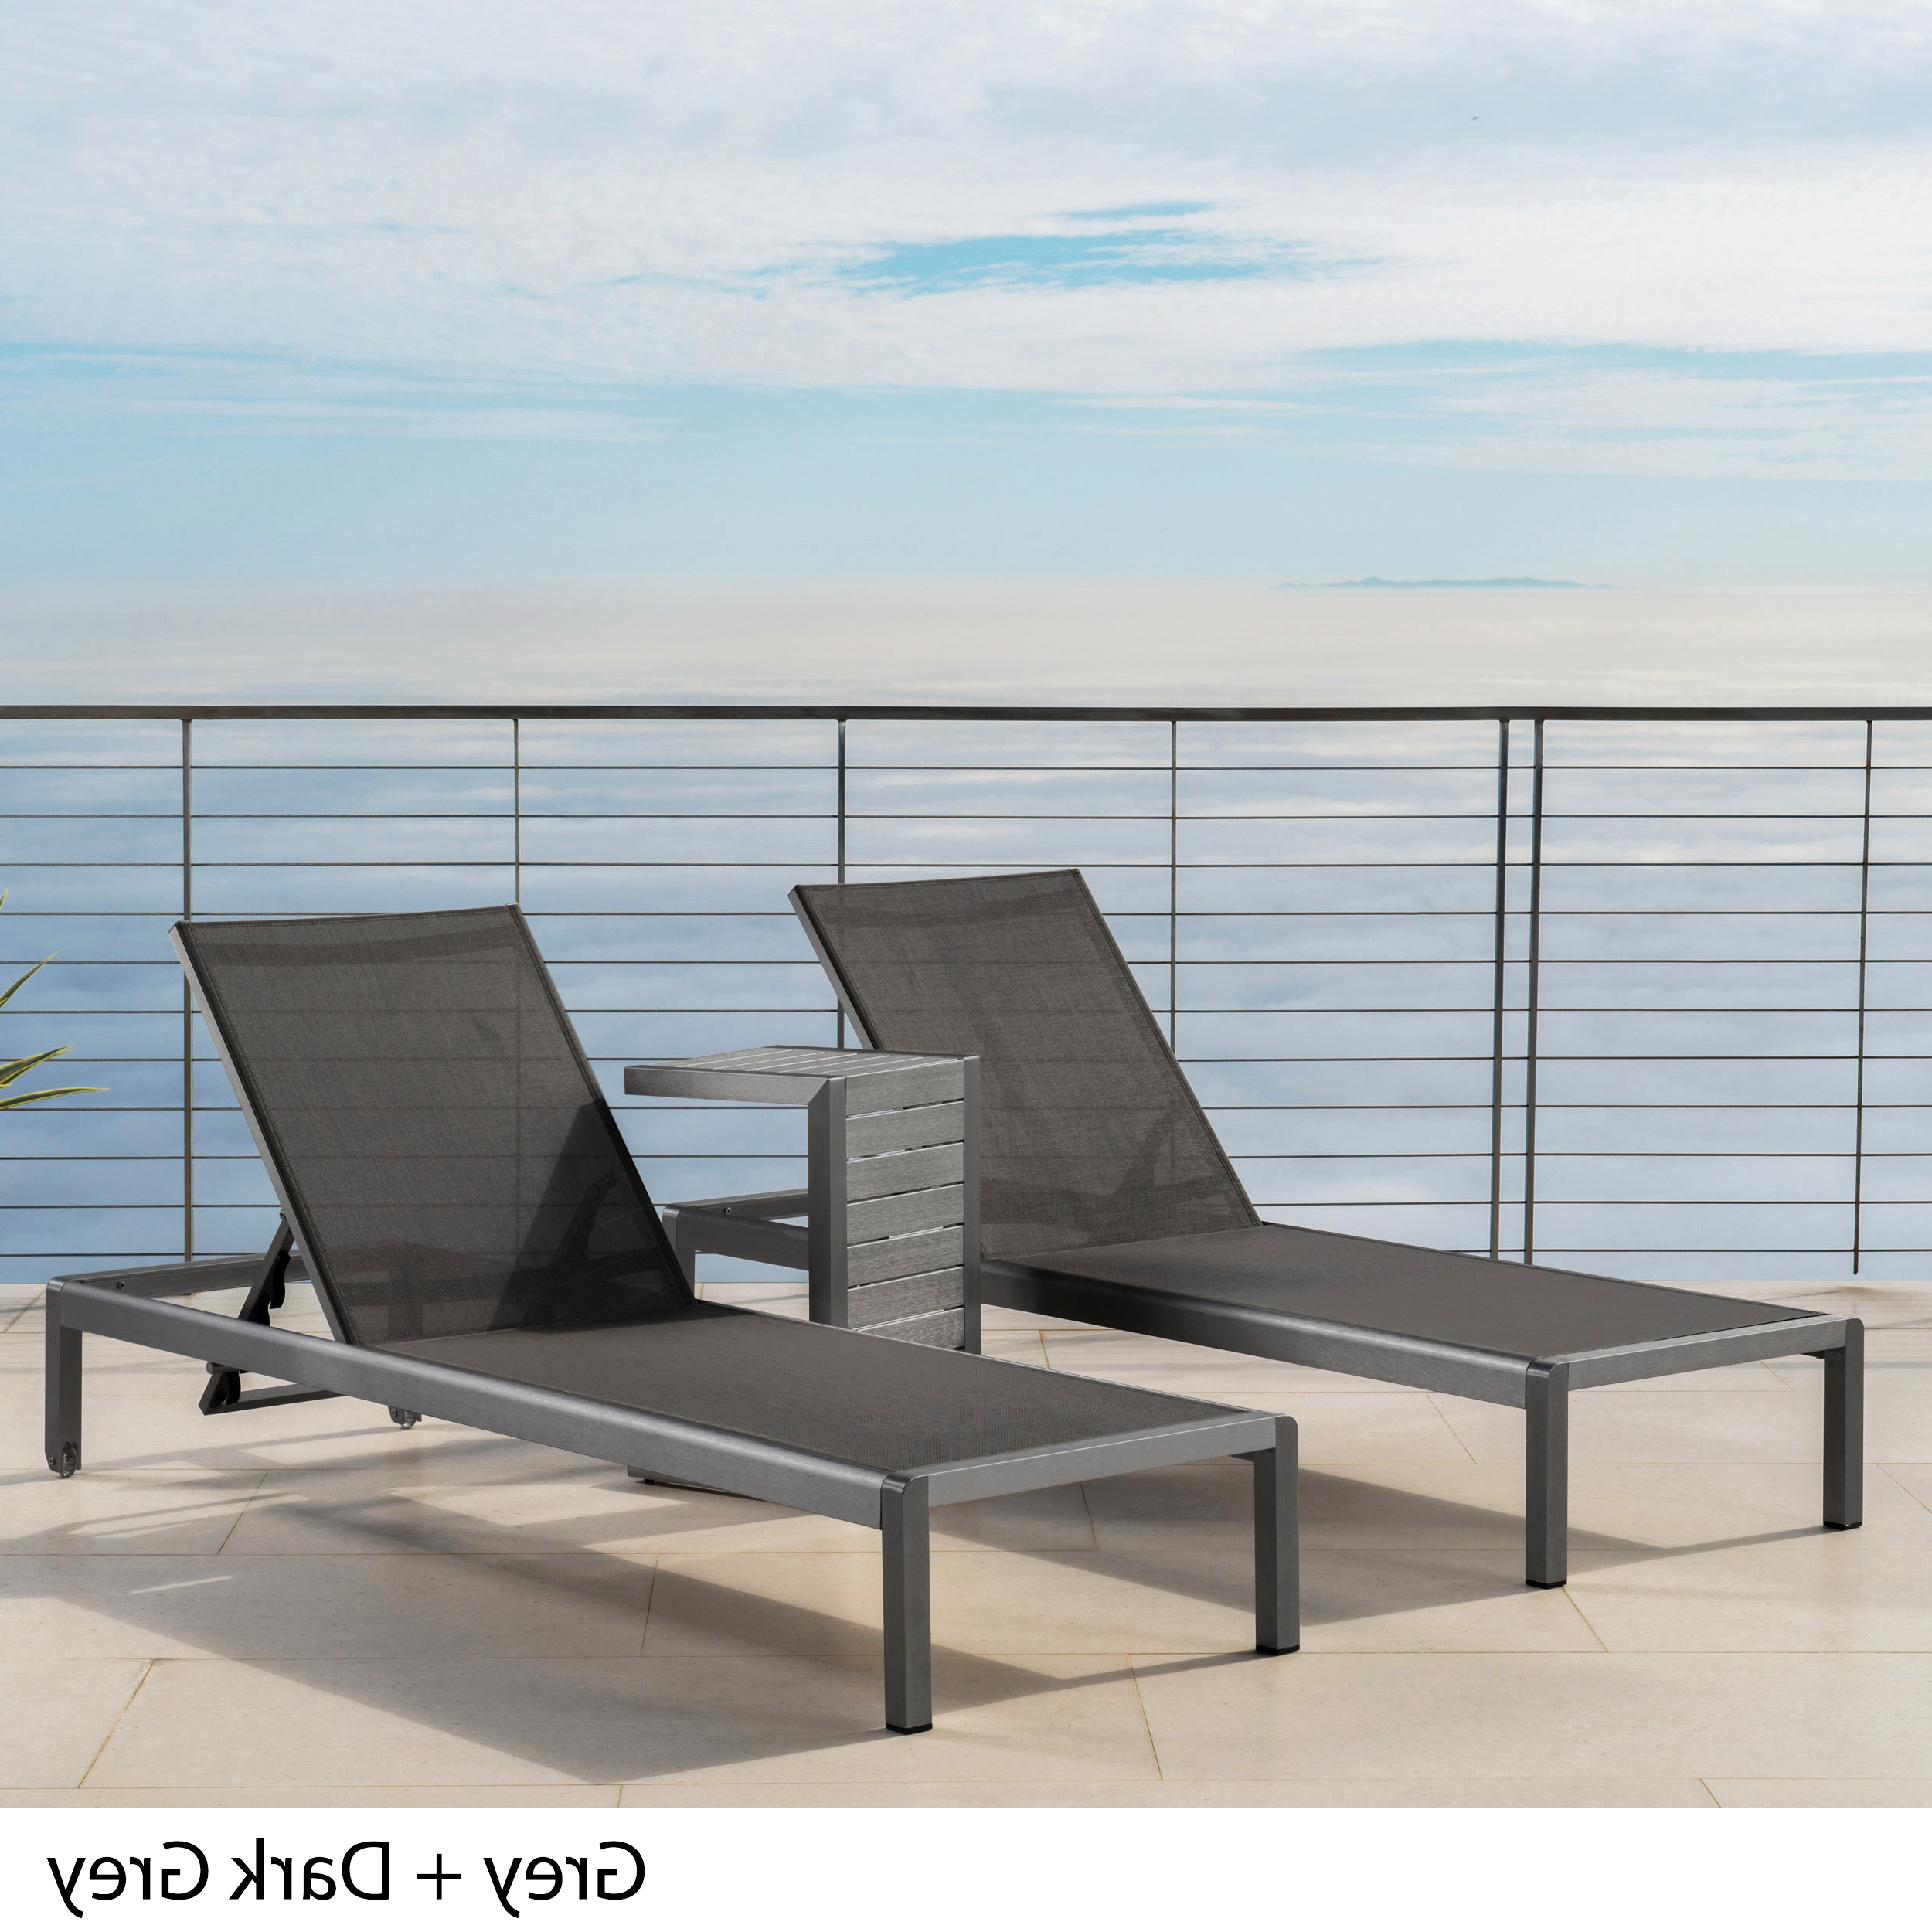 Outdoor Aluminum Chaise Lounges Inside Recent Details About Coral Bay Outdoor Gray Aluminum Chaise Lounge And C Shaped  Side Table (View 20 of 25)